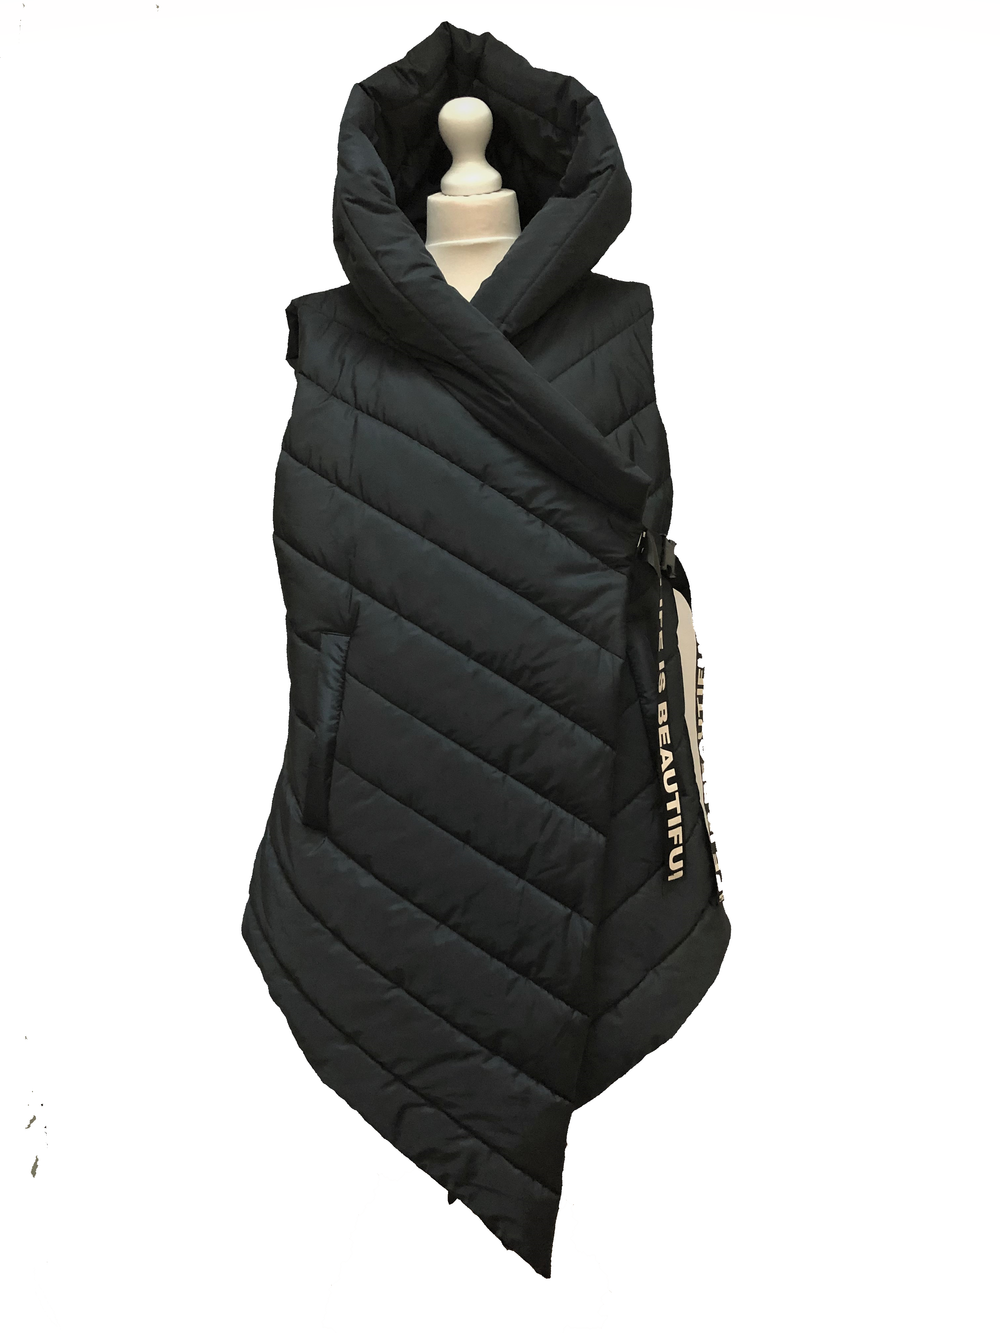 Wrap up Warm! Its Gilet Time!